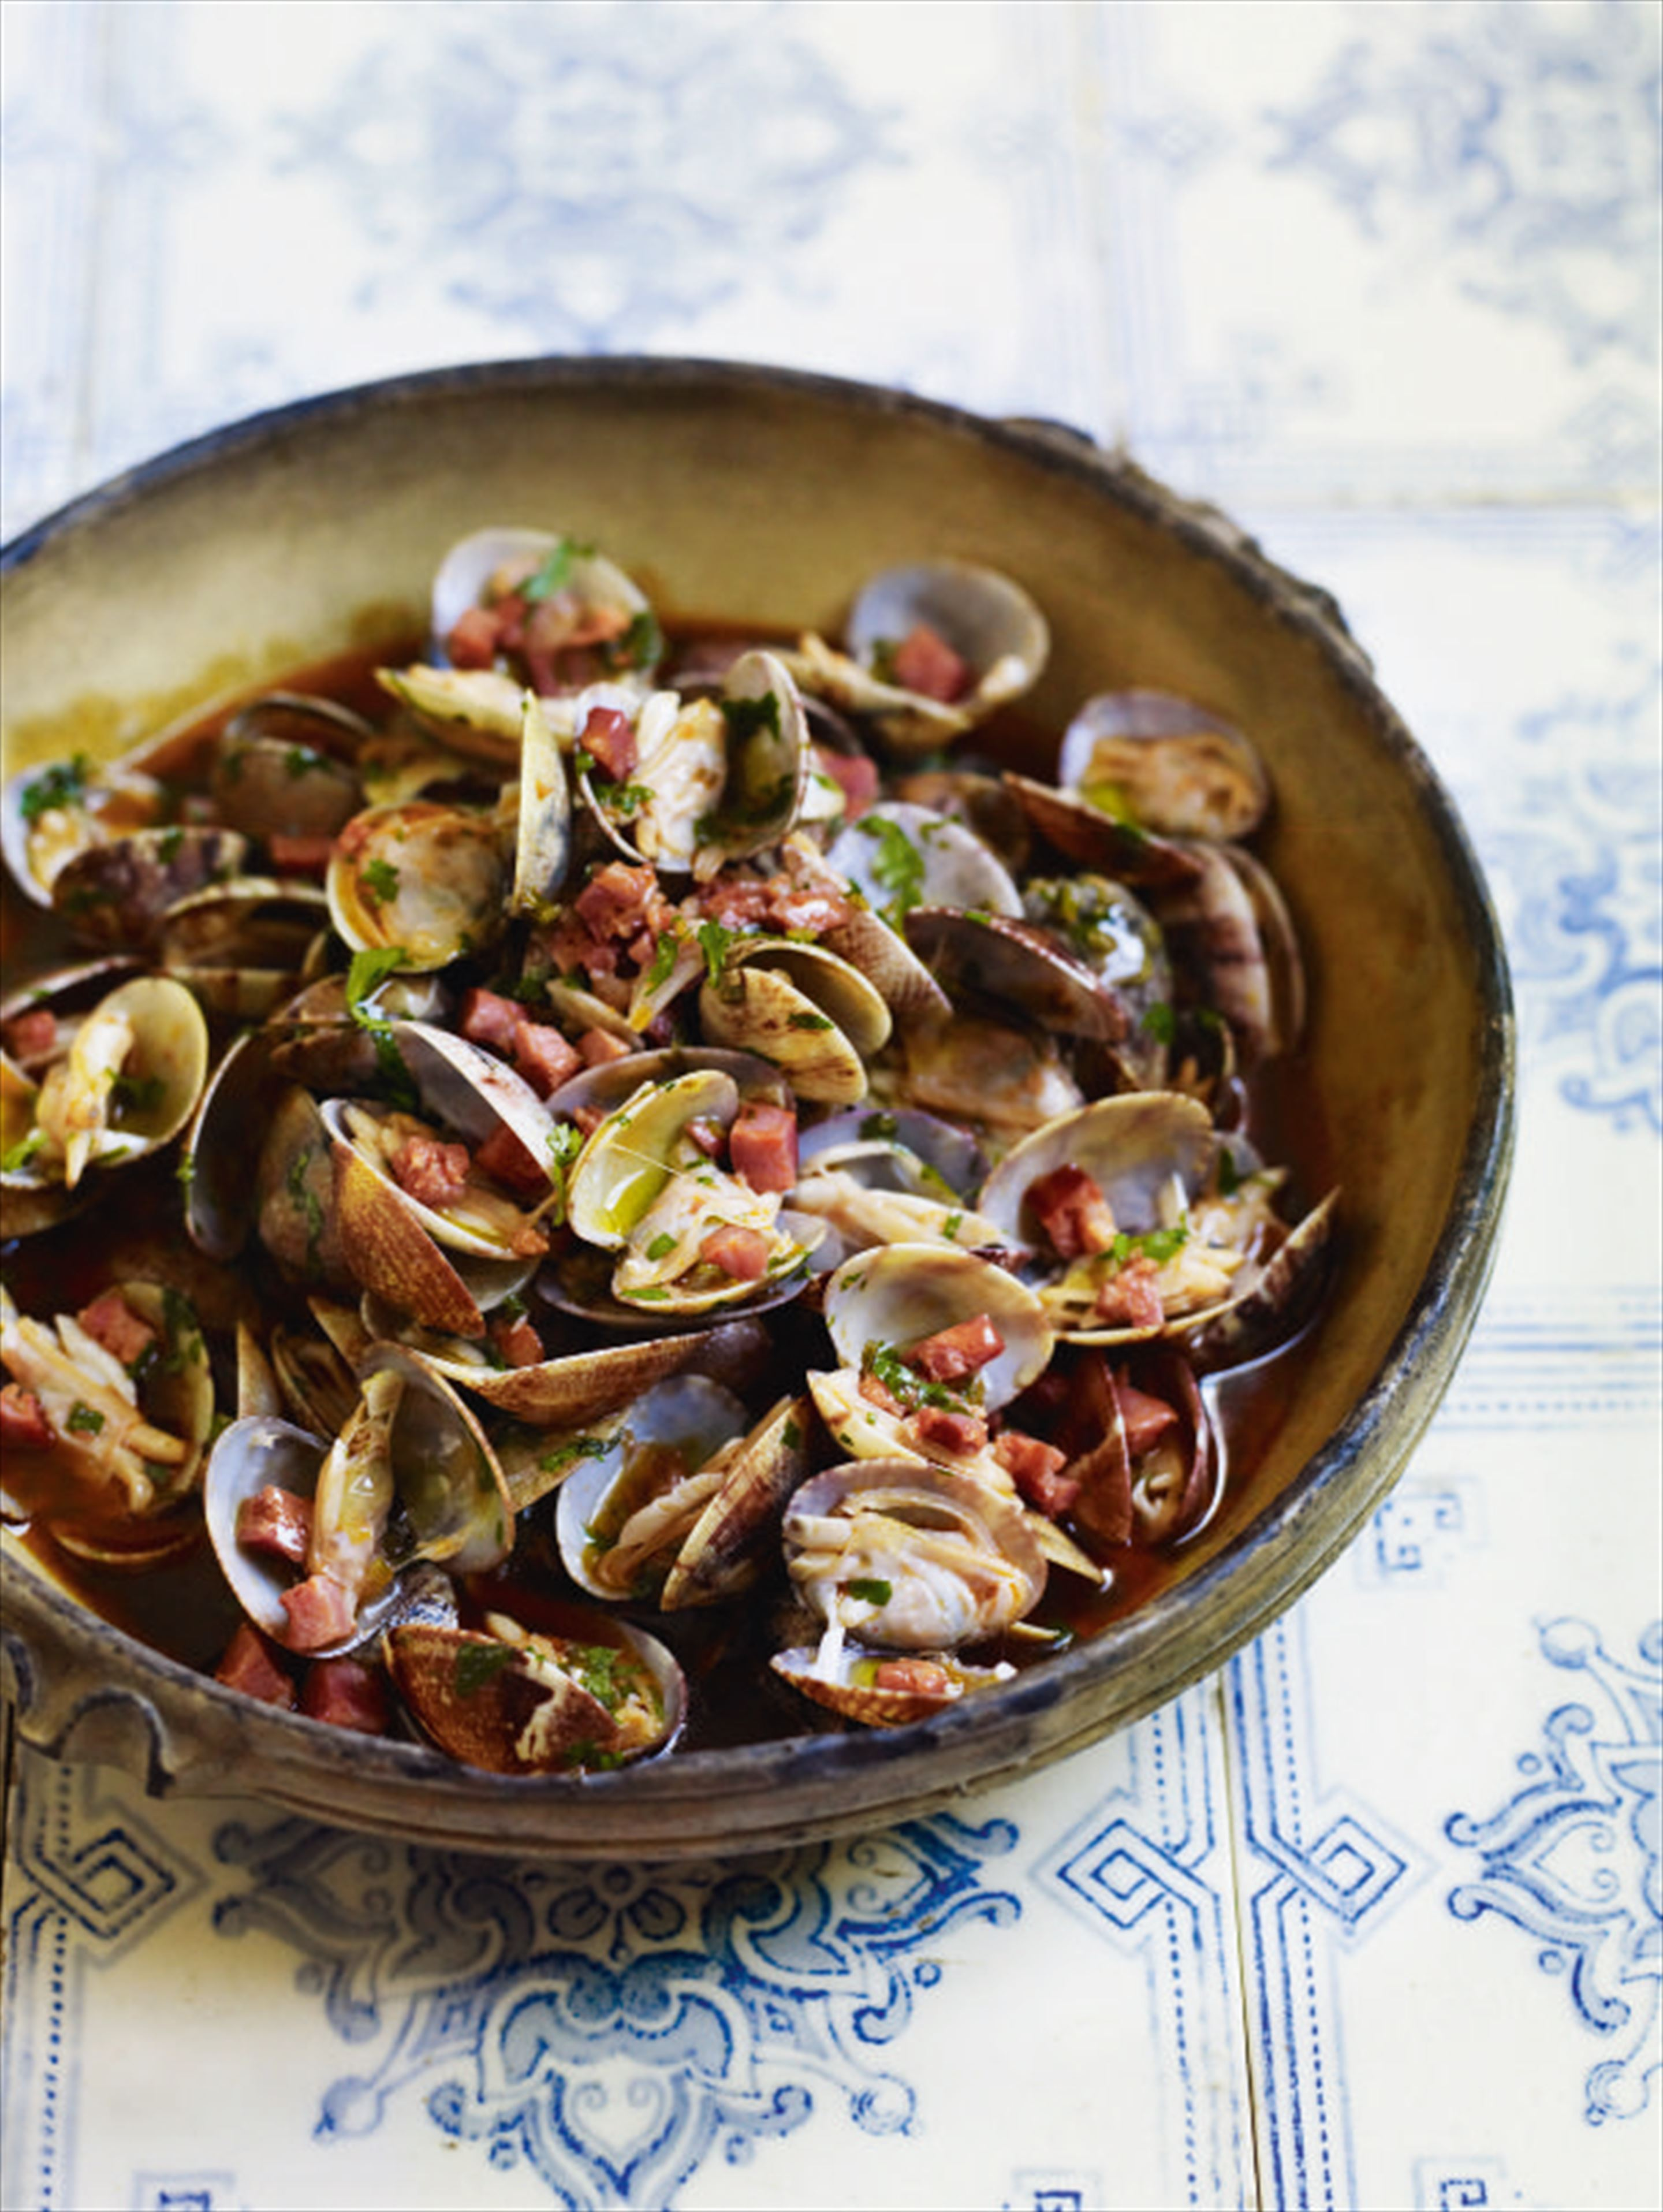 Clams with chouriço, garlic and coriander